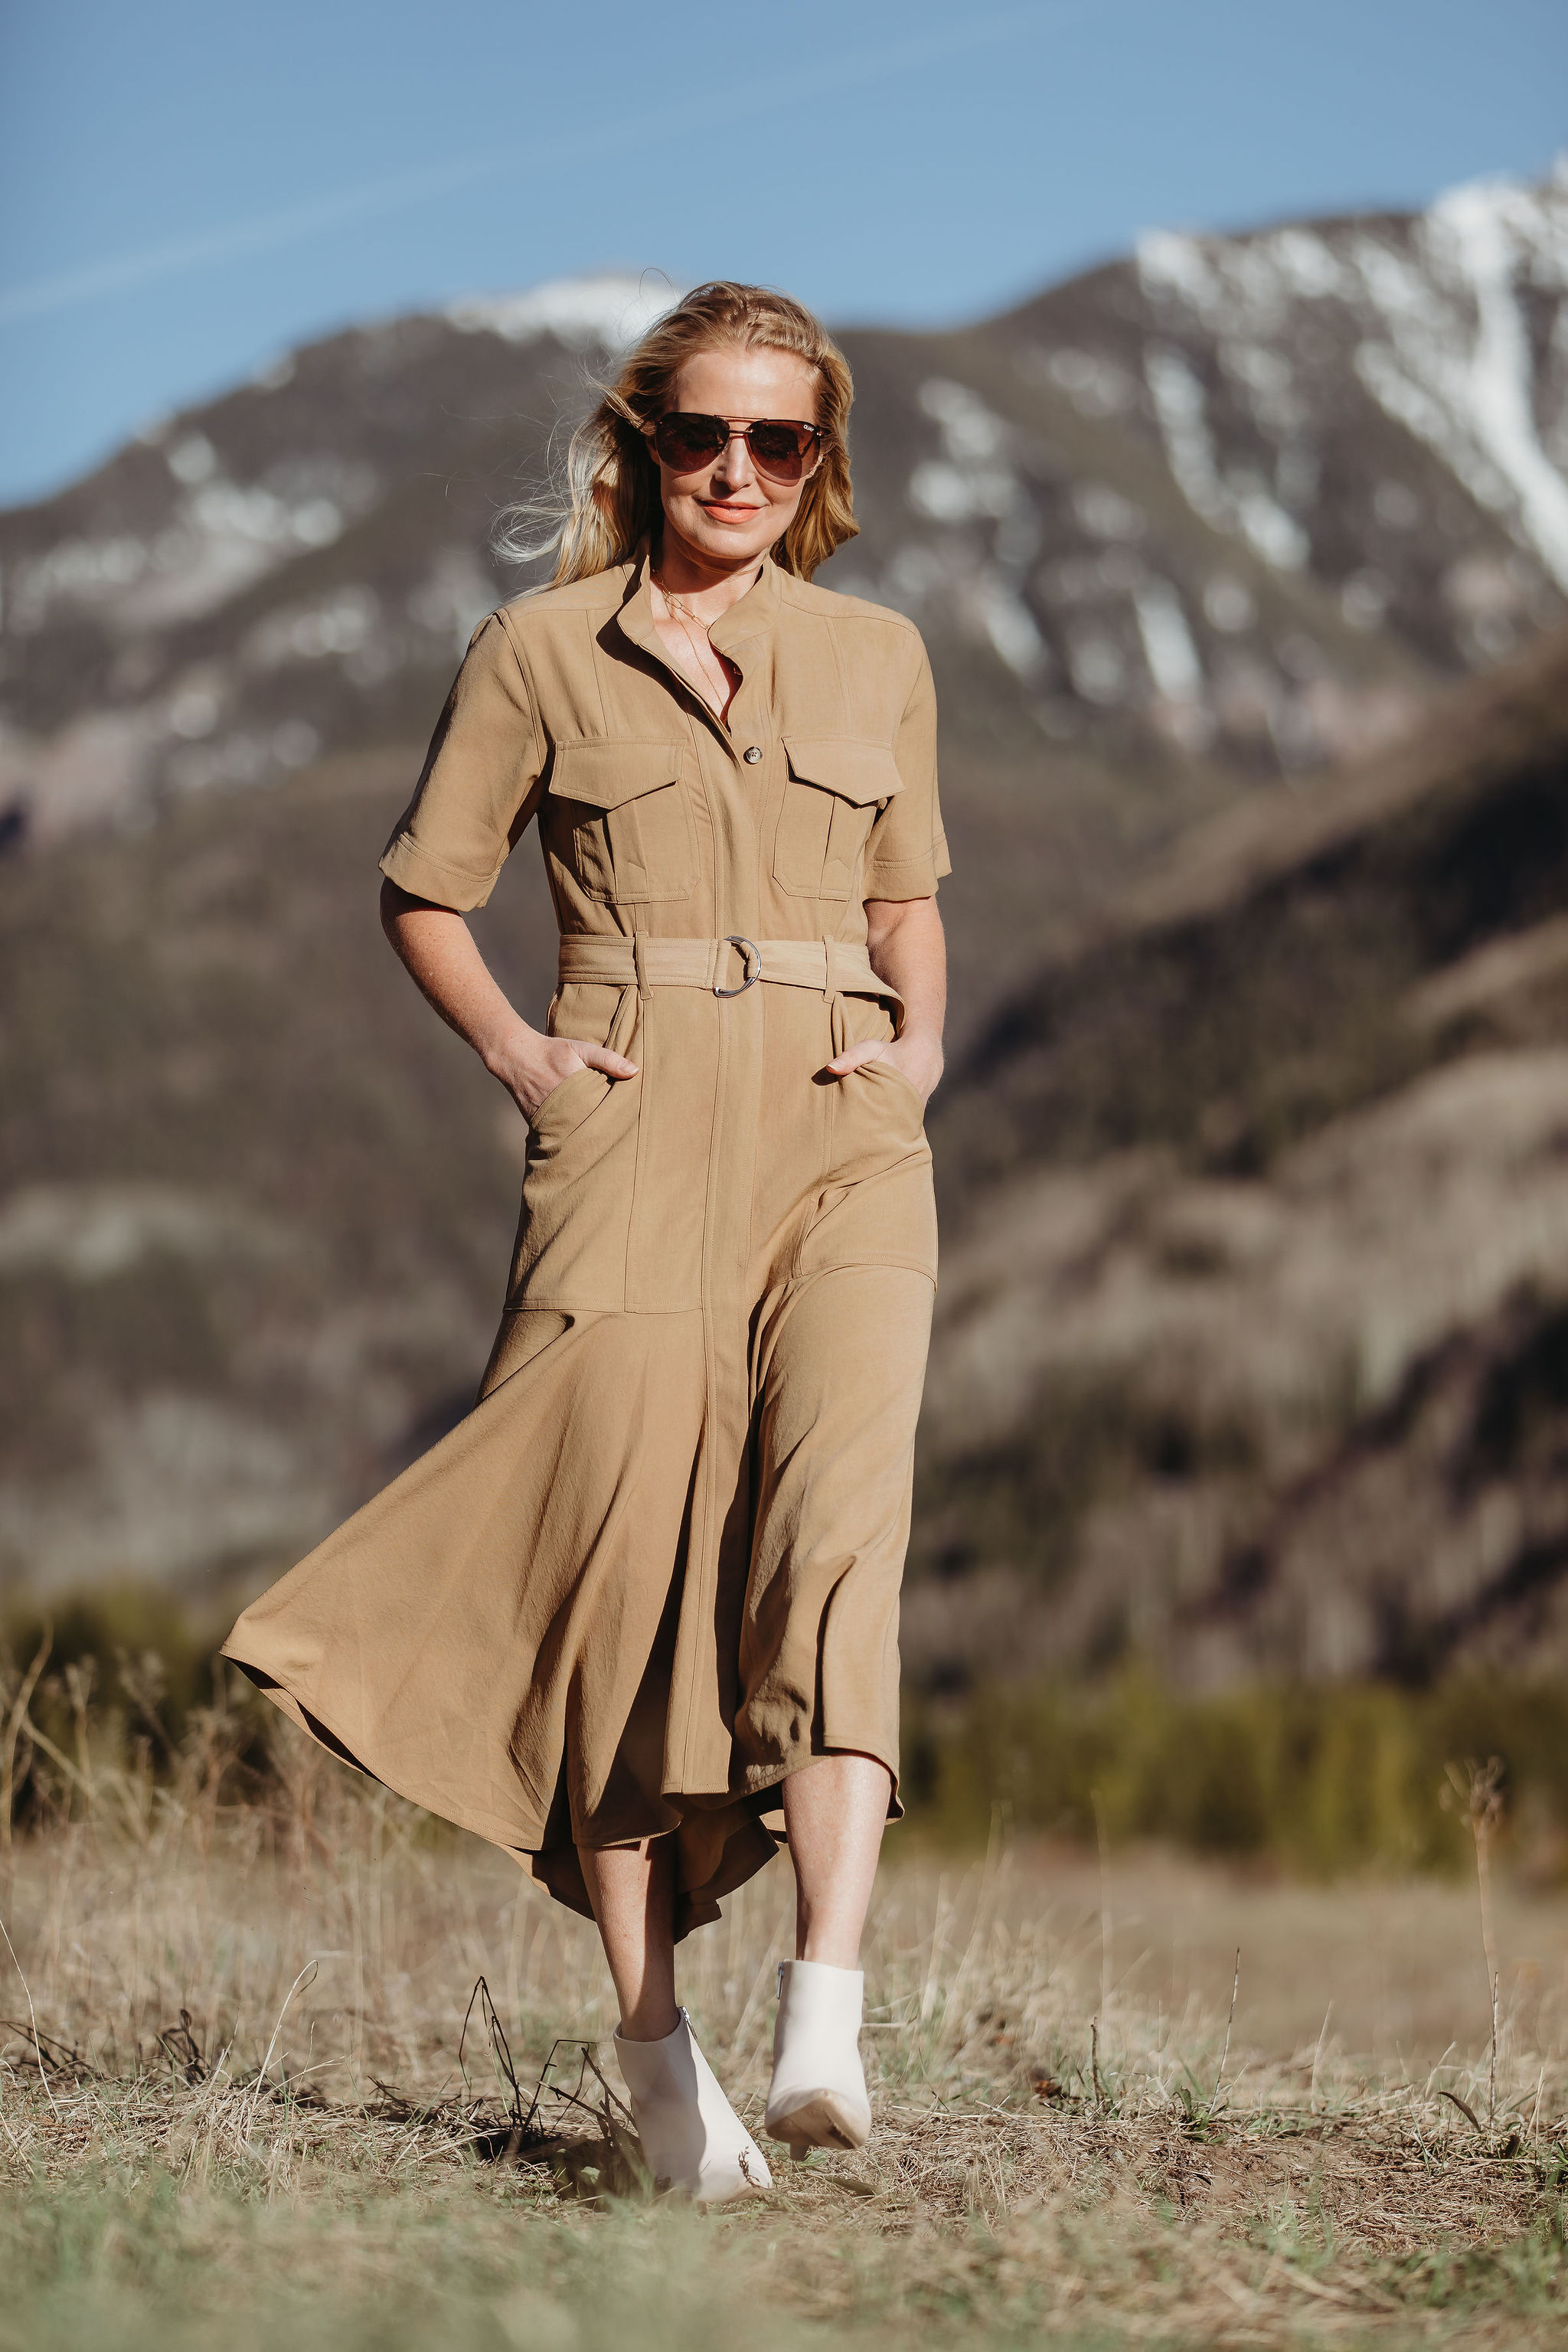 fashionable african safari outfit, what to pack for Africa safari, tan ALC belted shirtdress by ALC white booties